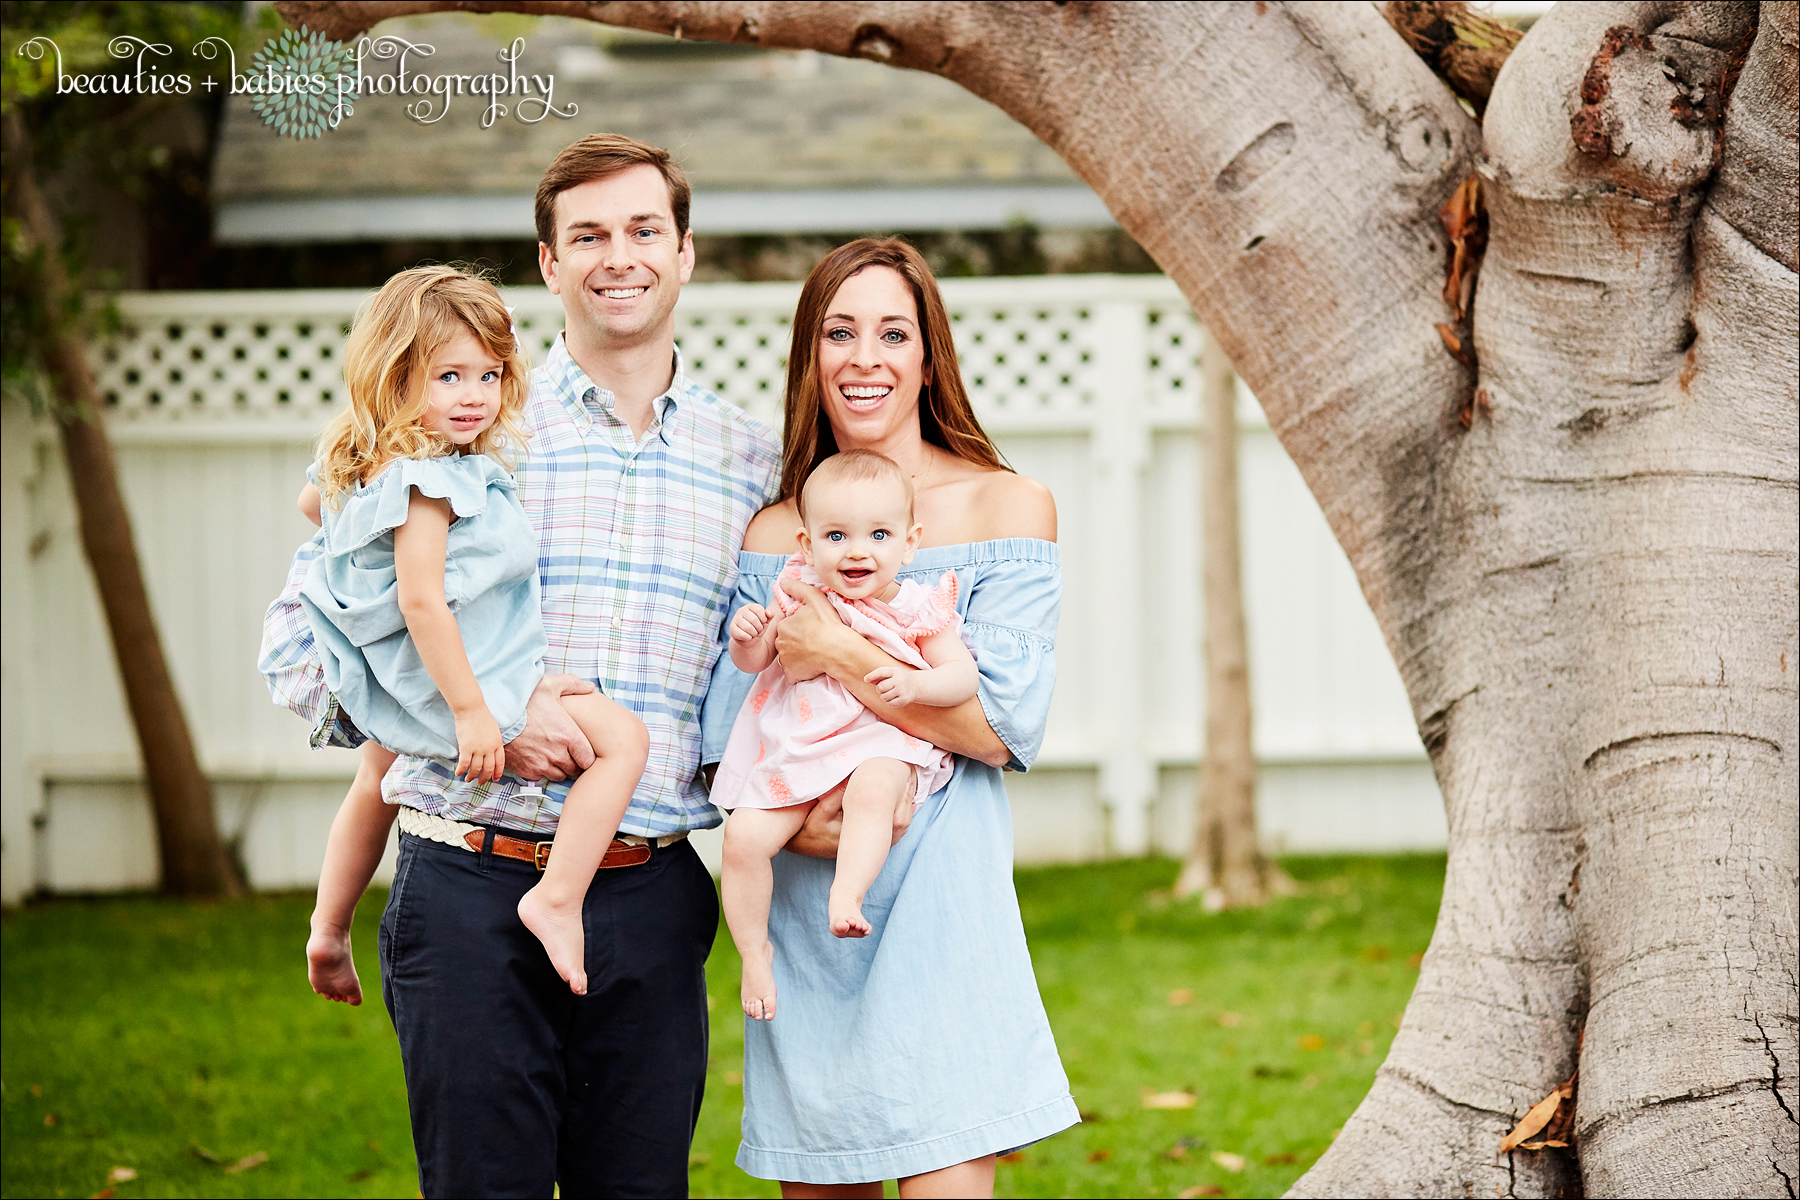 Los Angeles family photographer, kids and baby professional photographer Los Angeles, Los Angeles children's photographer, Family photography Los Angeles photographer, Best family photographer Los Angeles